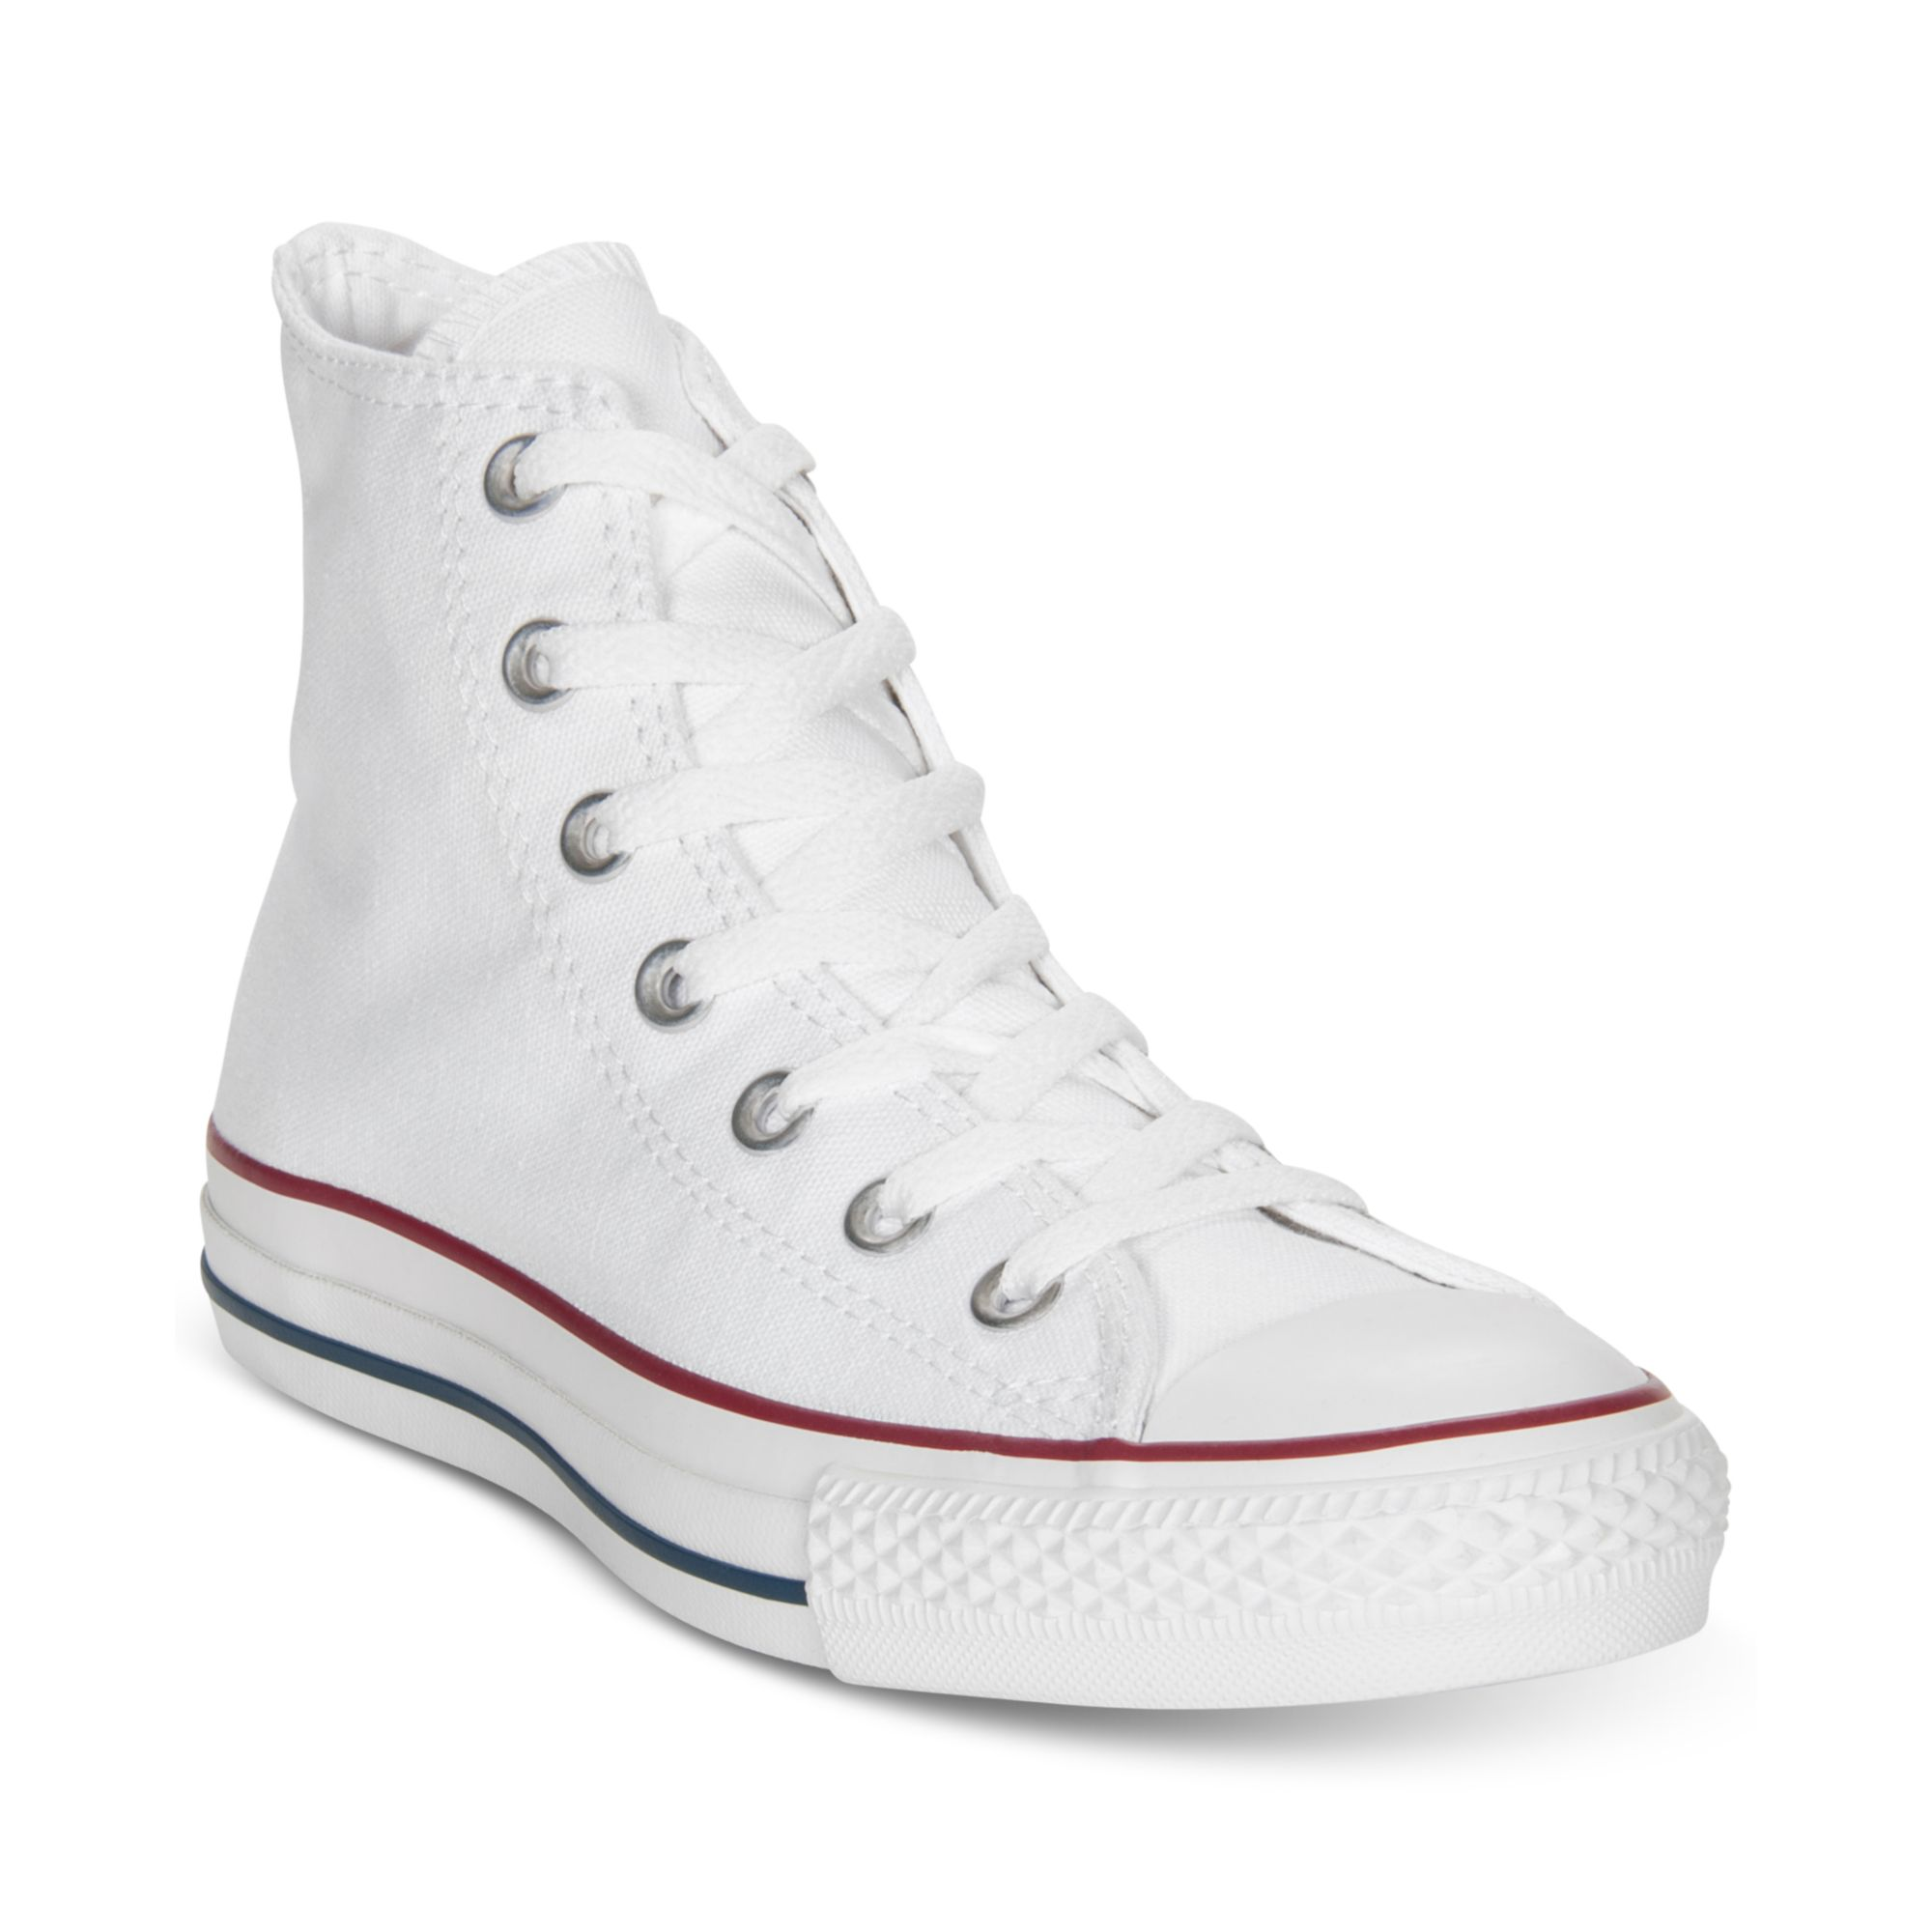 converse s chuck high top sneakers from